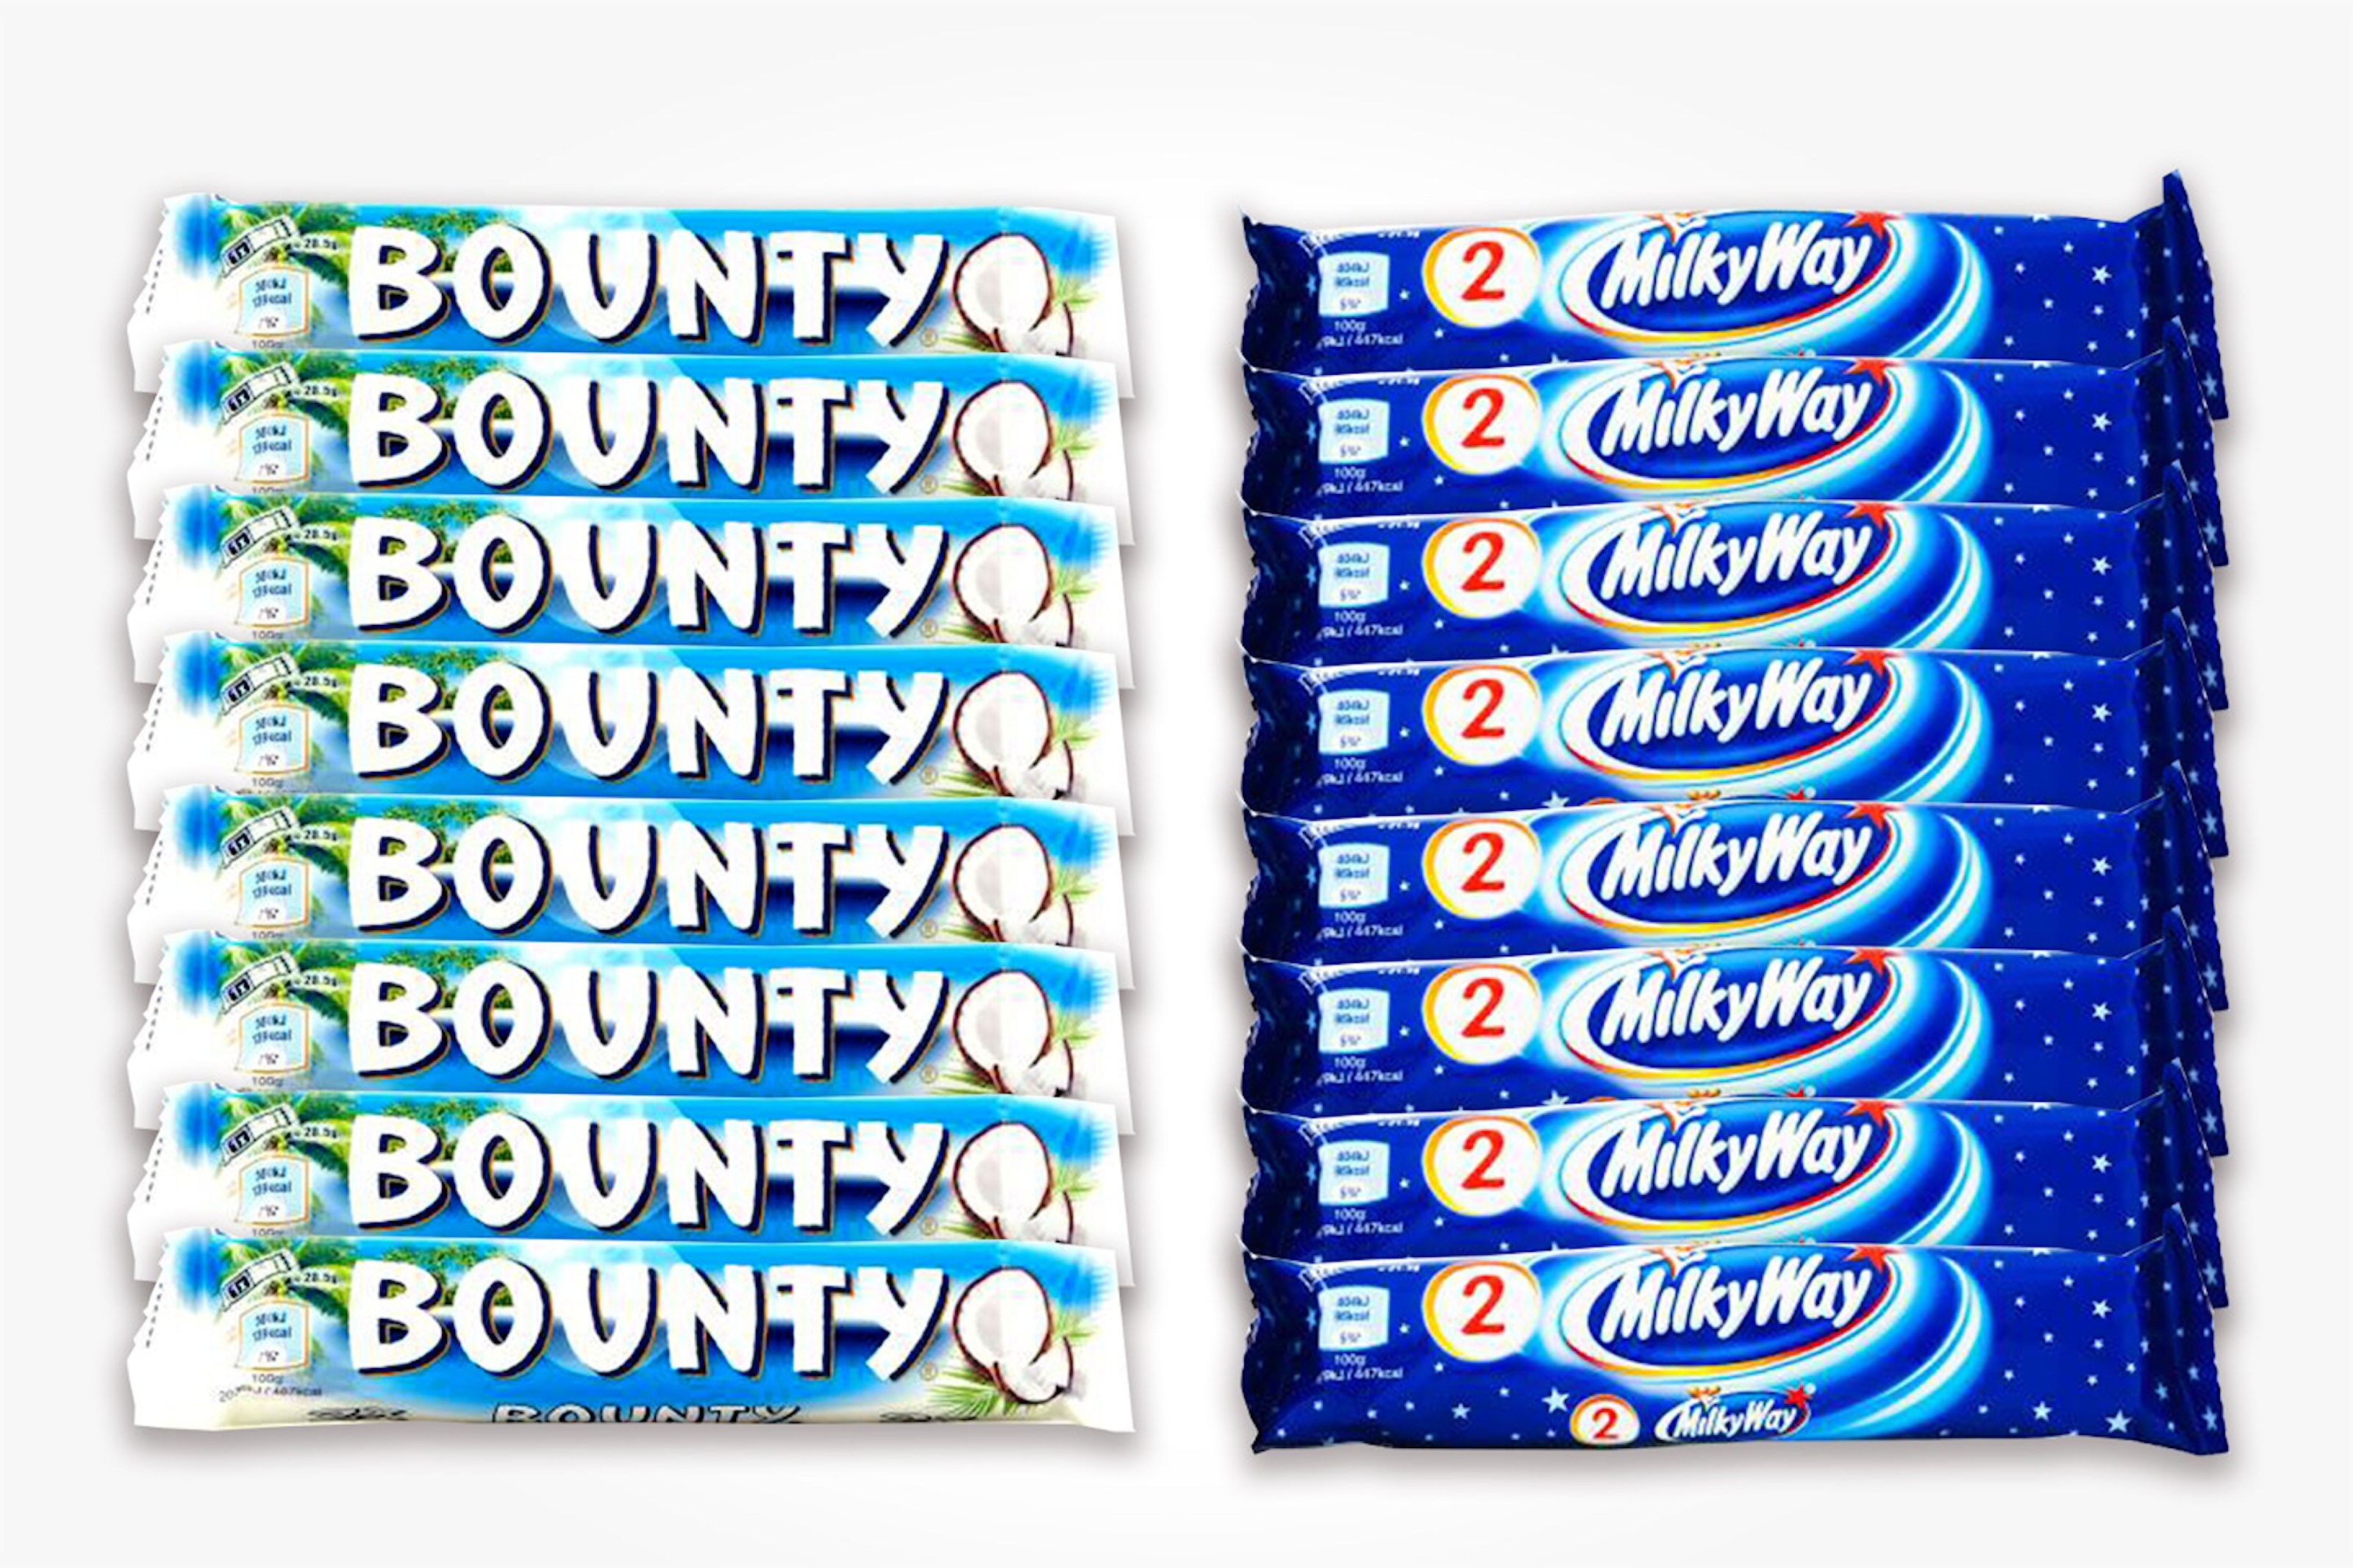 24-pack Bounty eller Milky Way